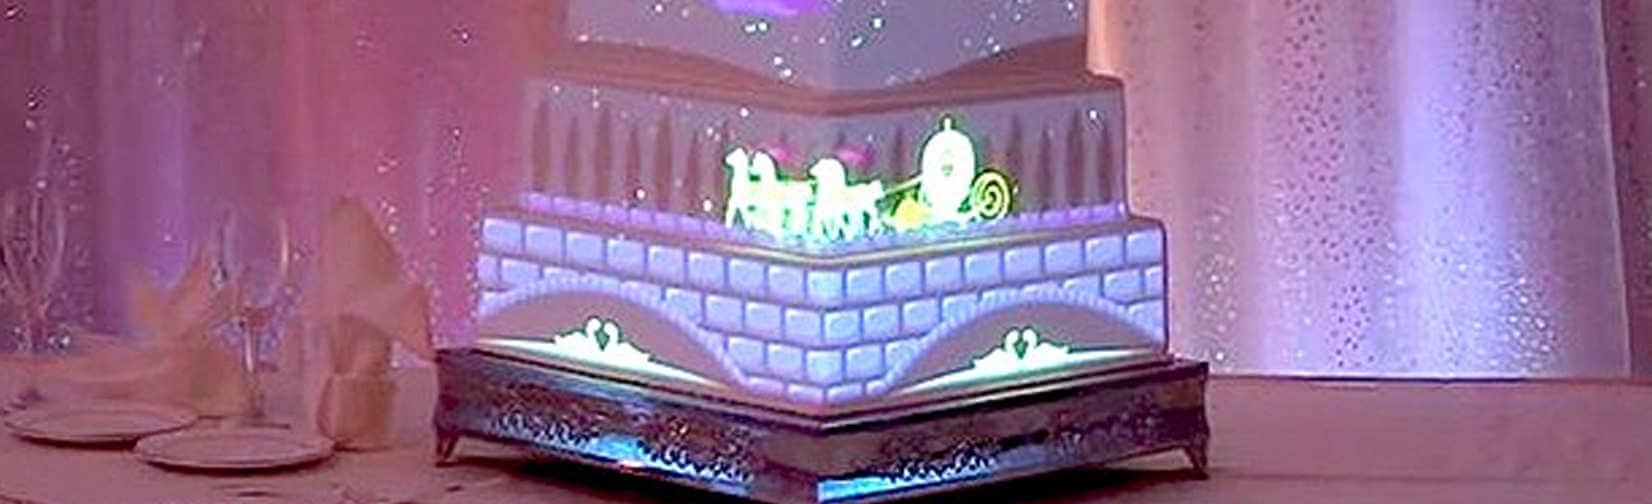 a tiered wedding cake with animations projected onto its surface.